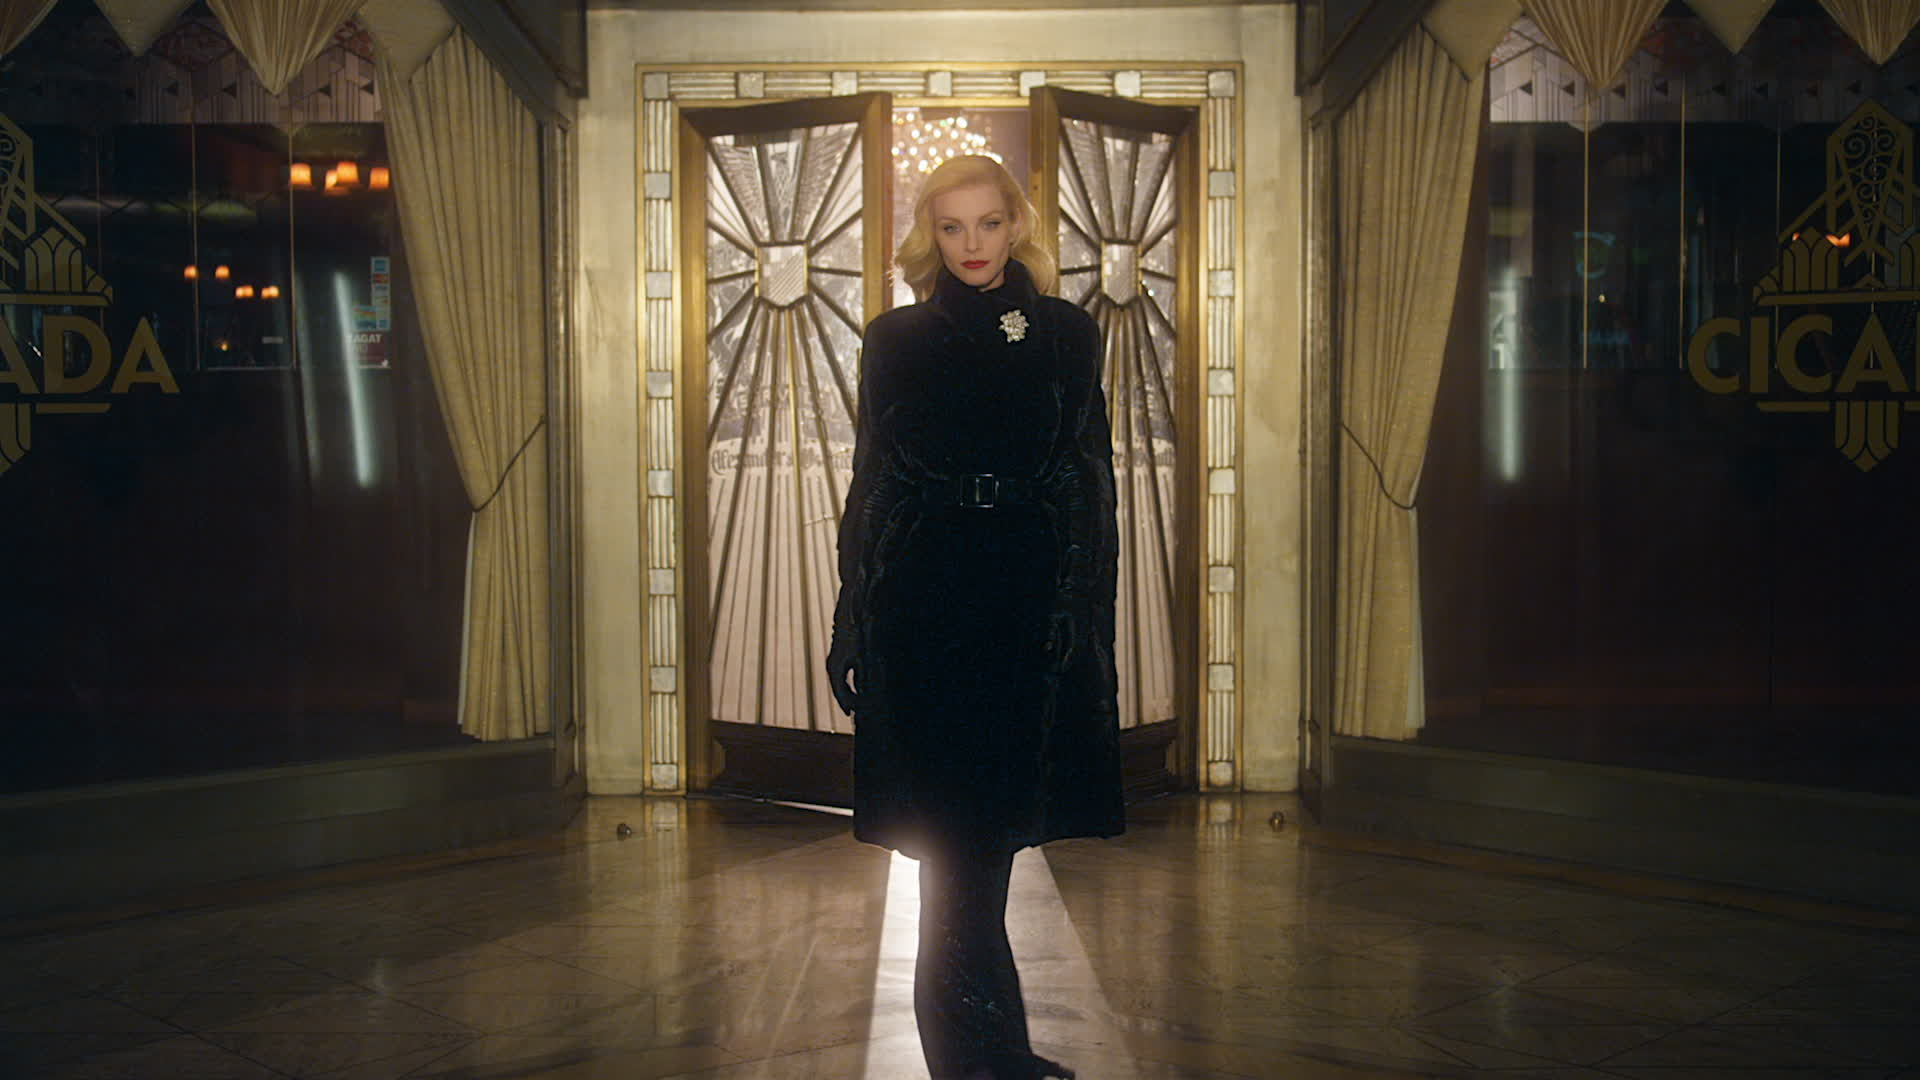 Blackglama Fall 2015 Advertising Campaign Video with Jessica Stam